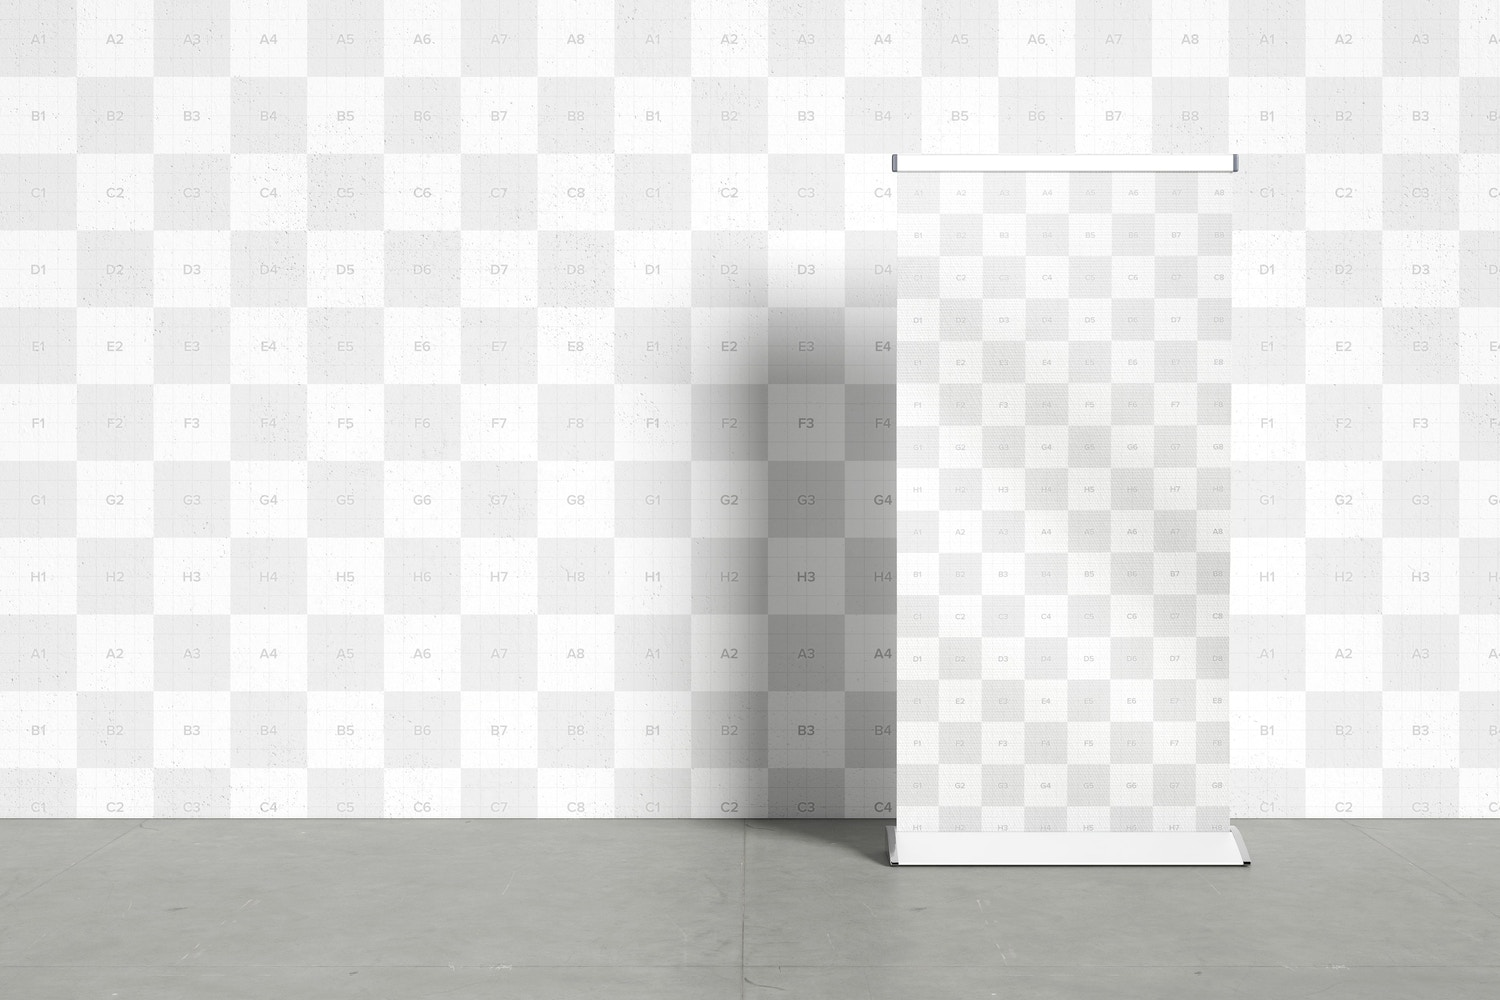 The grid is shown all the editable zones that allow the PSD Mockup